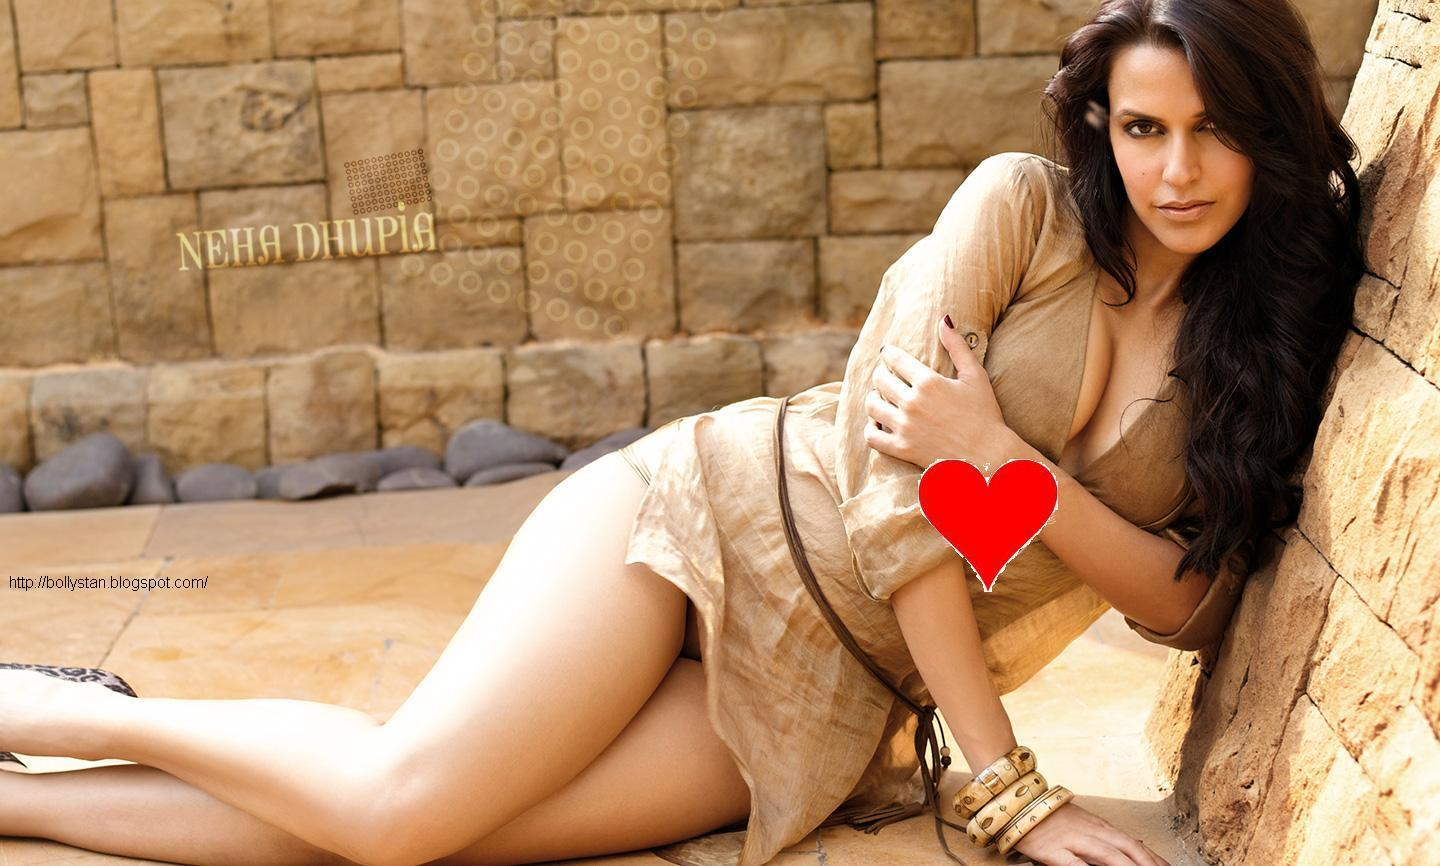 neha dhupia wallpapers hot -#main